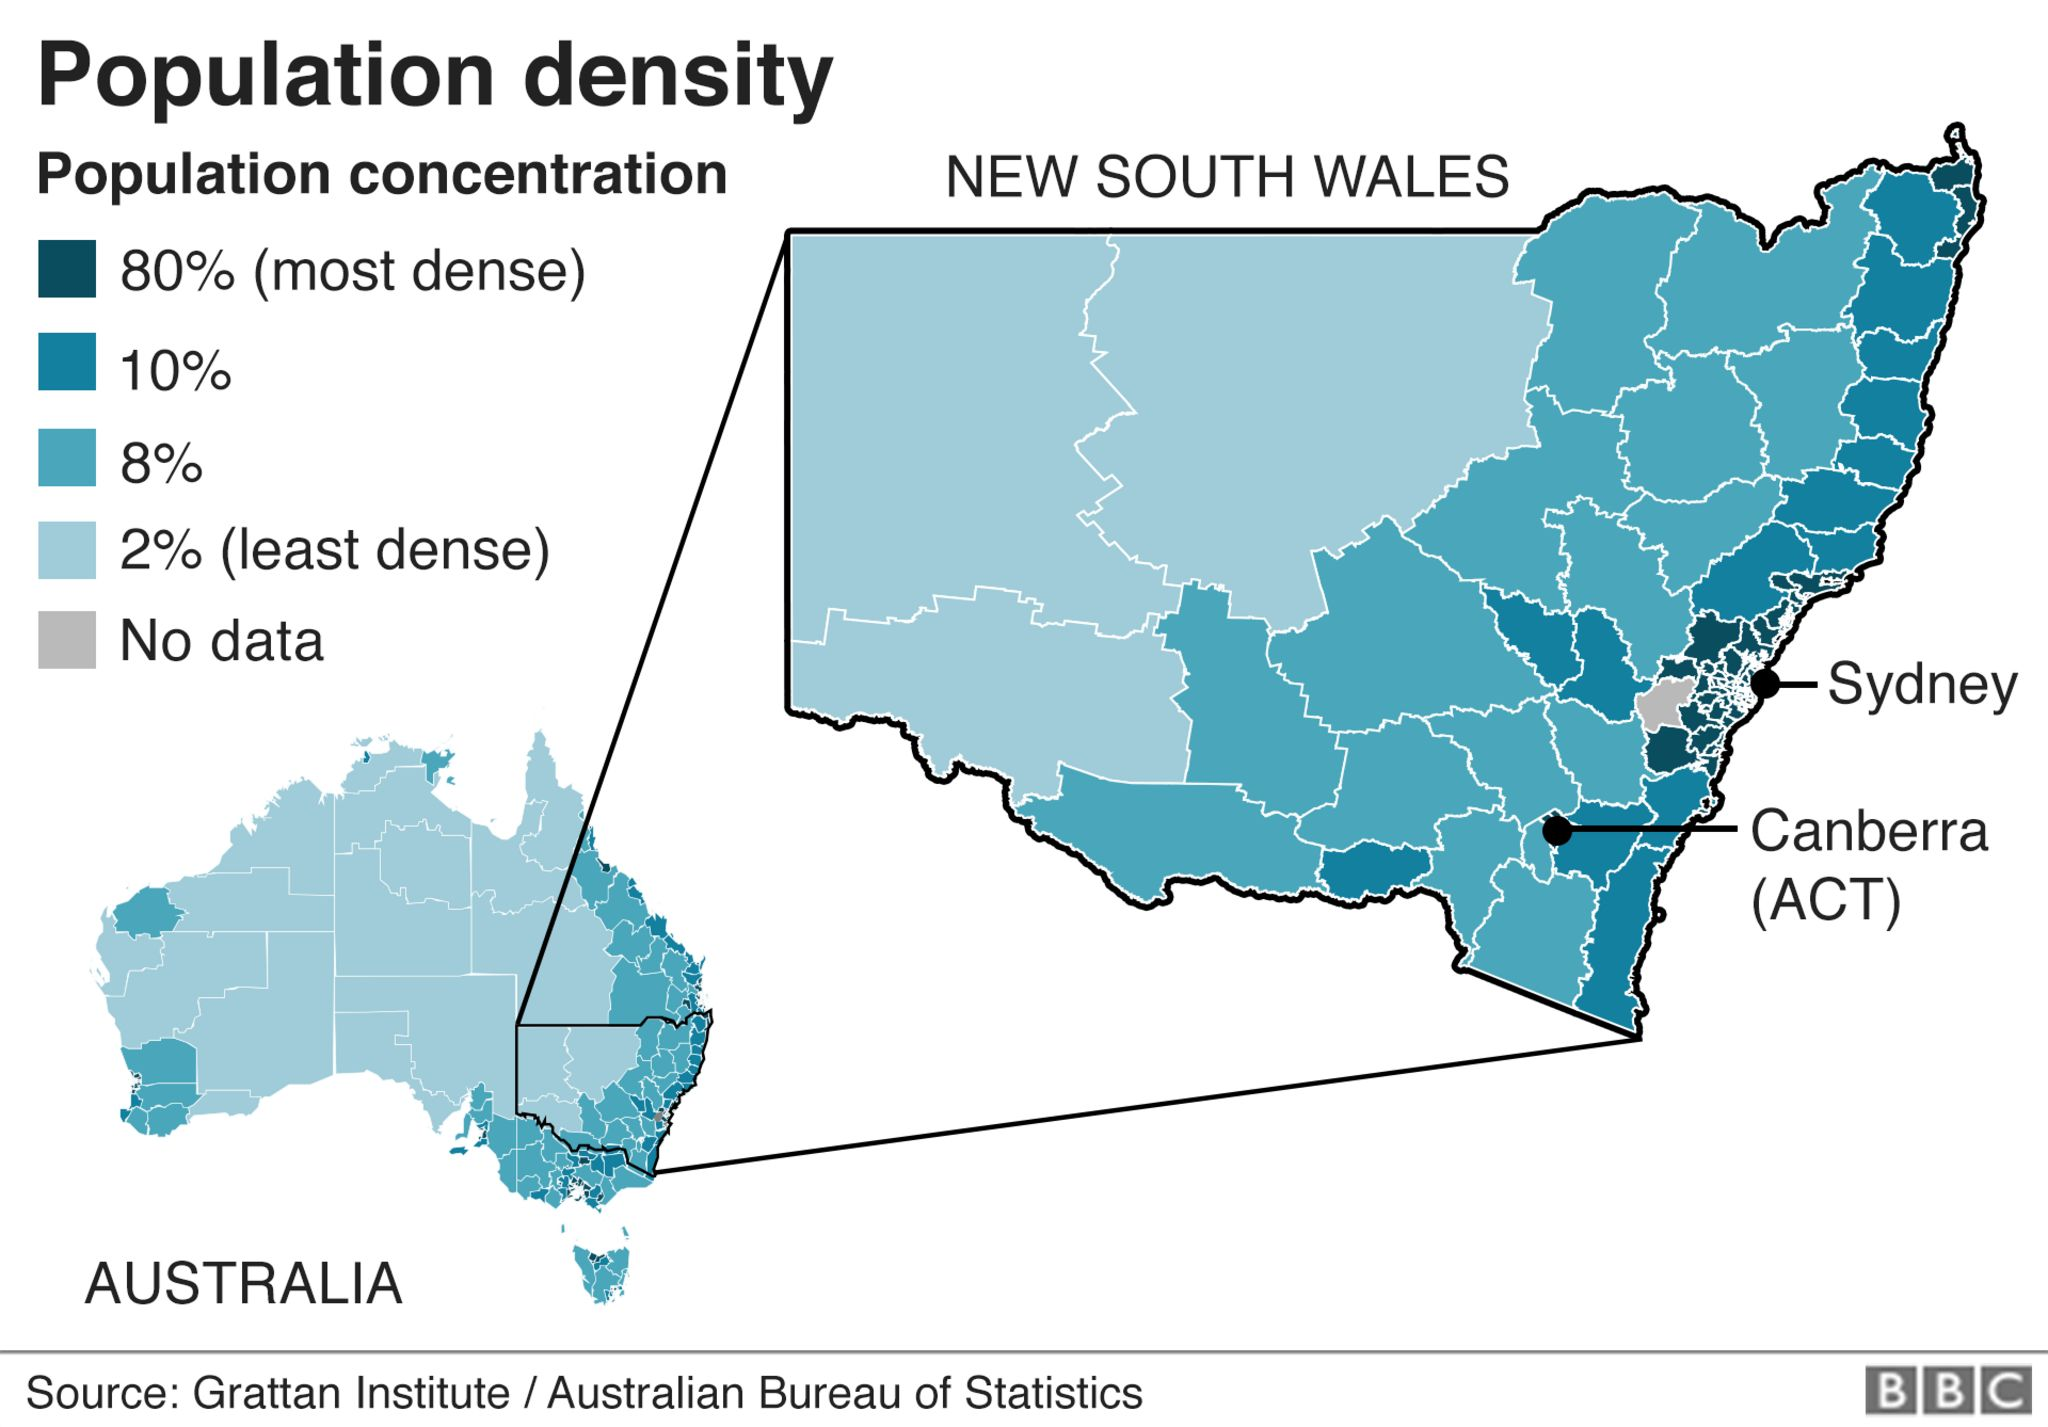 A map showing population density in New South Wales